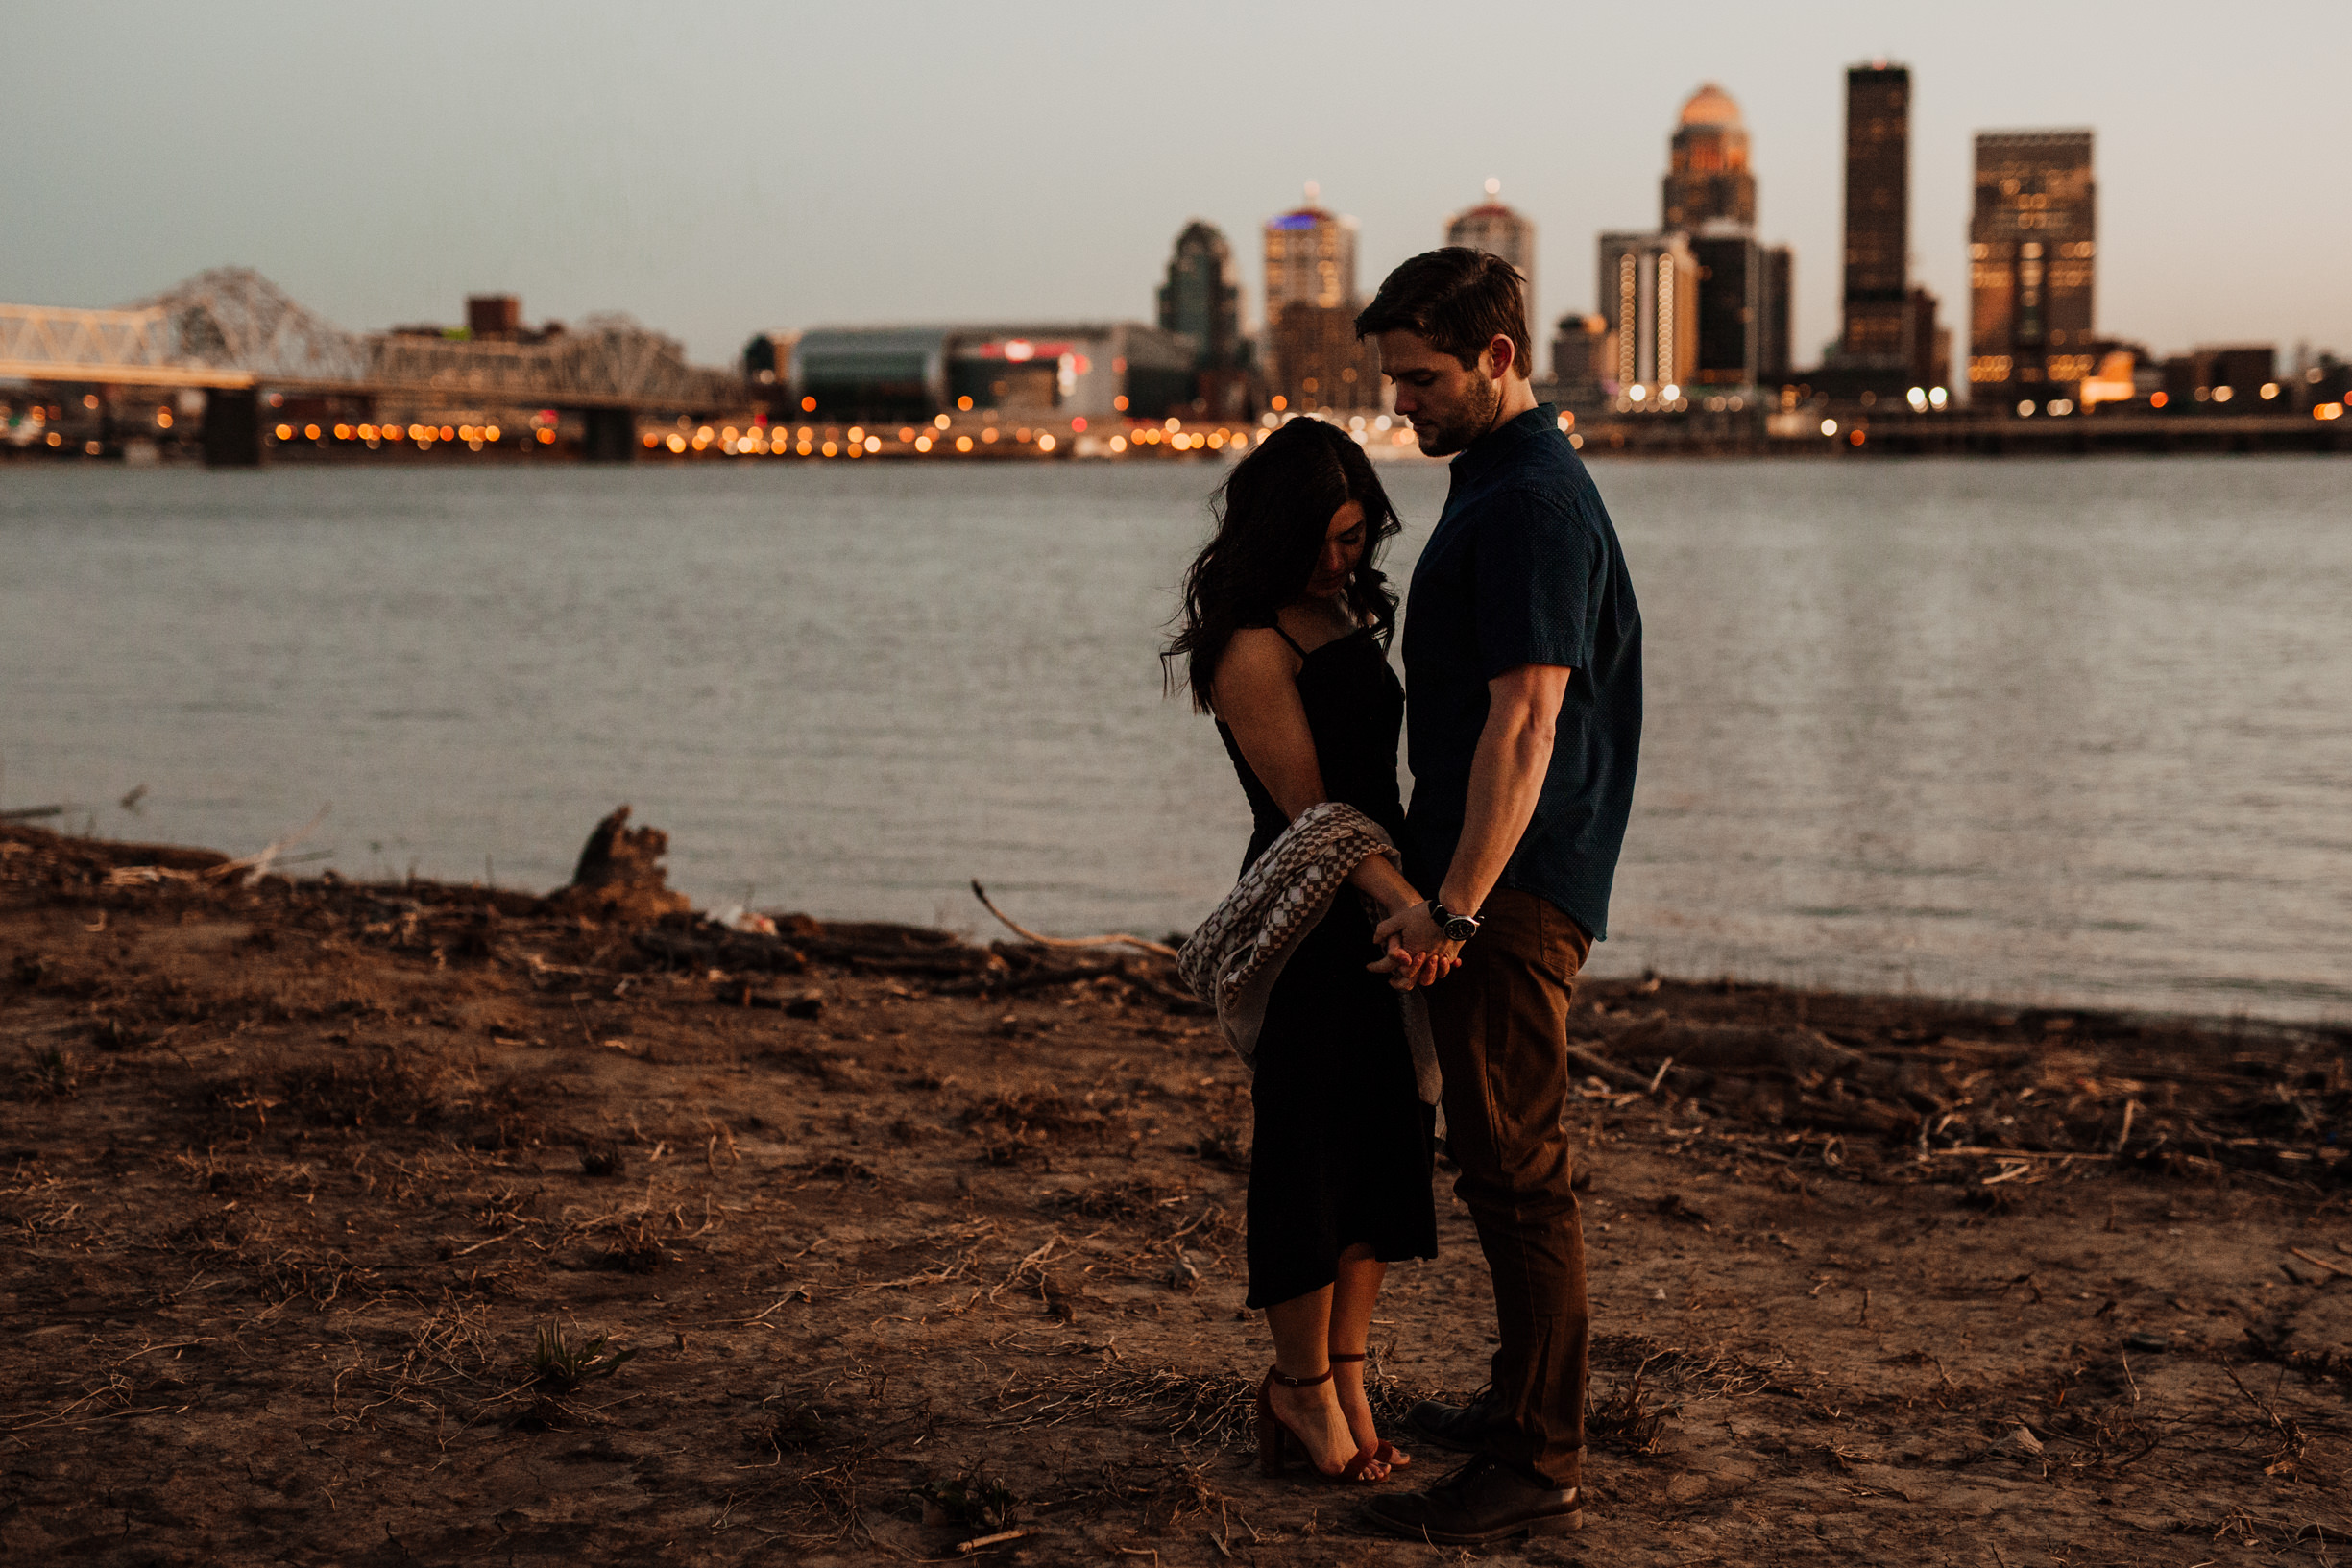 louisville-engagement-photographer-crystal-ludwick-photo-tammy-and-caleb-engagement-photography (29 of 32).jpg